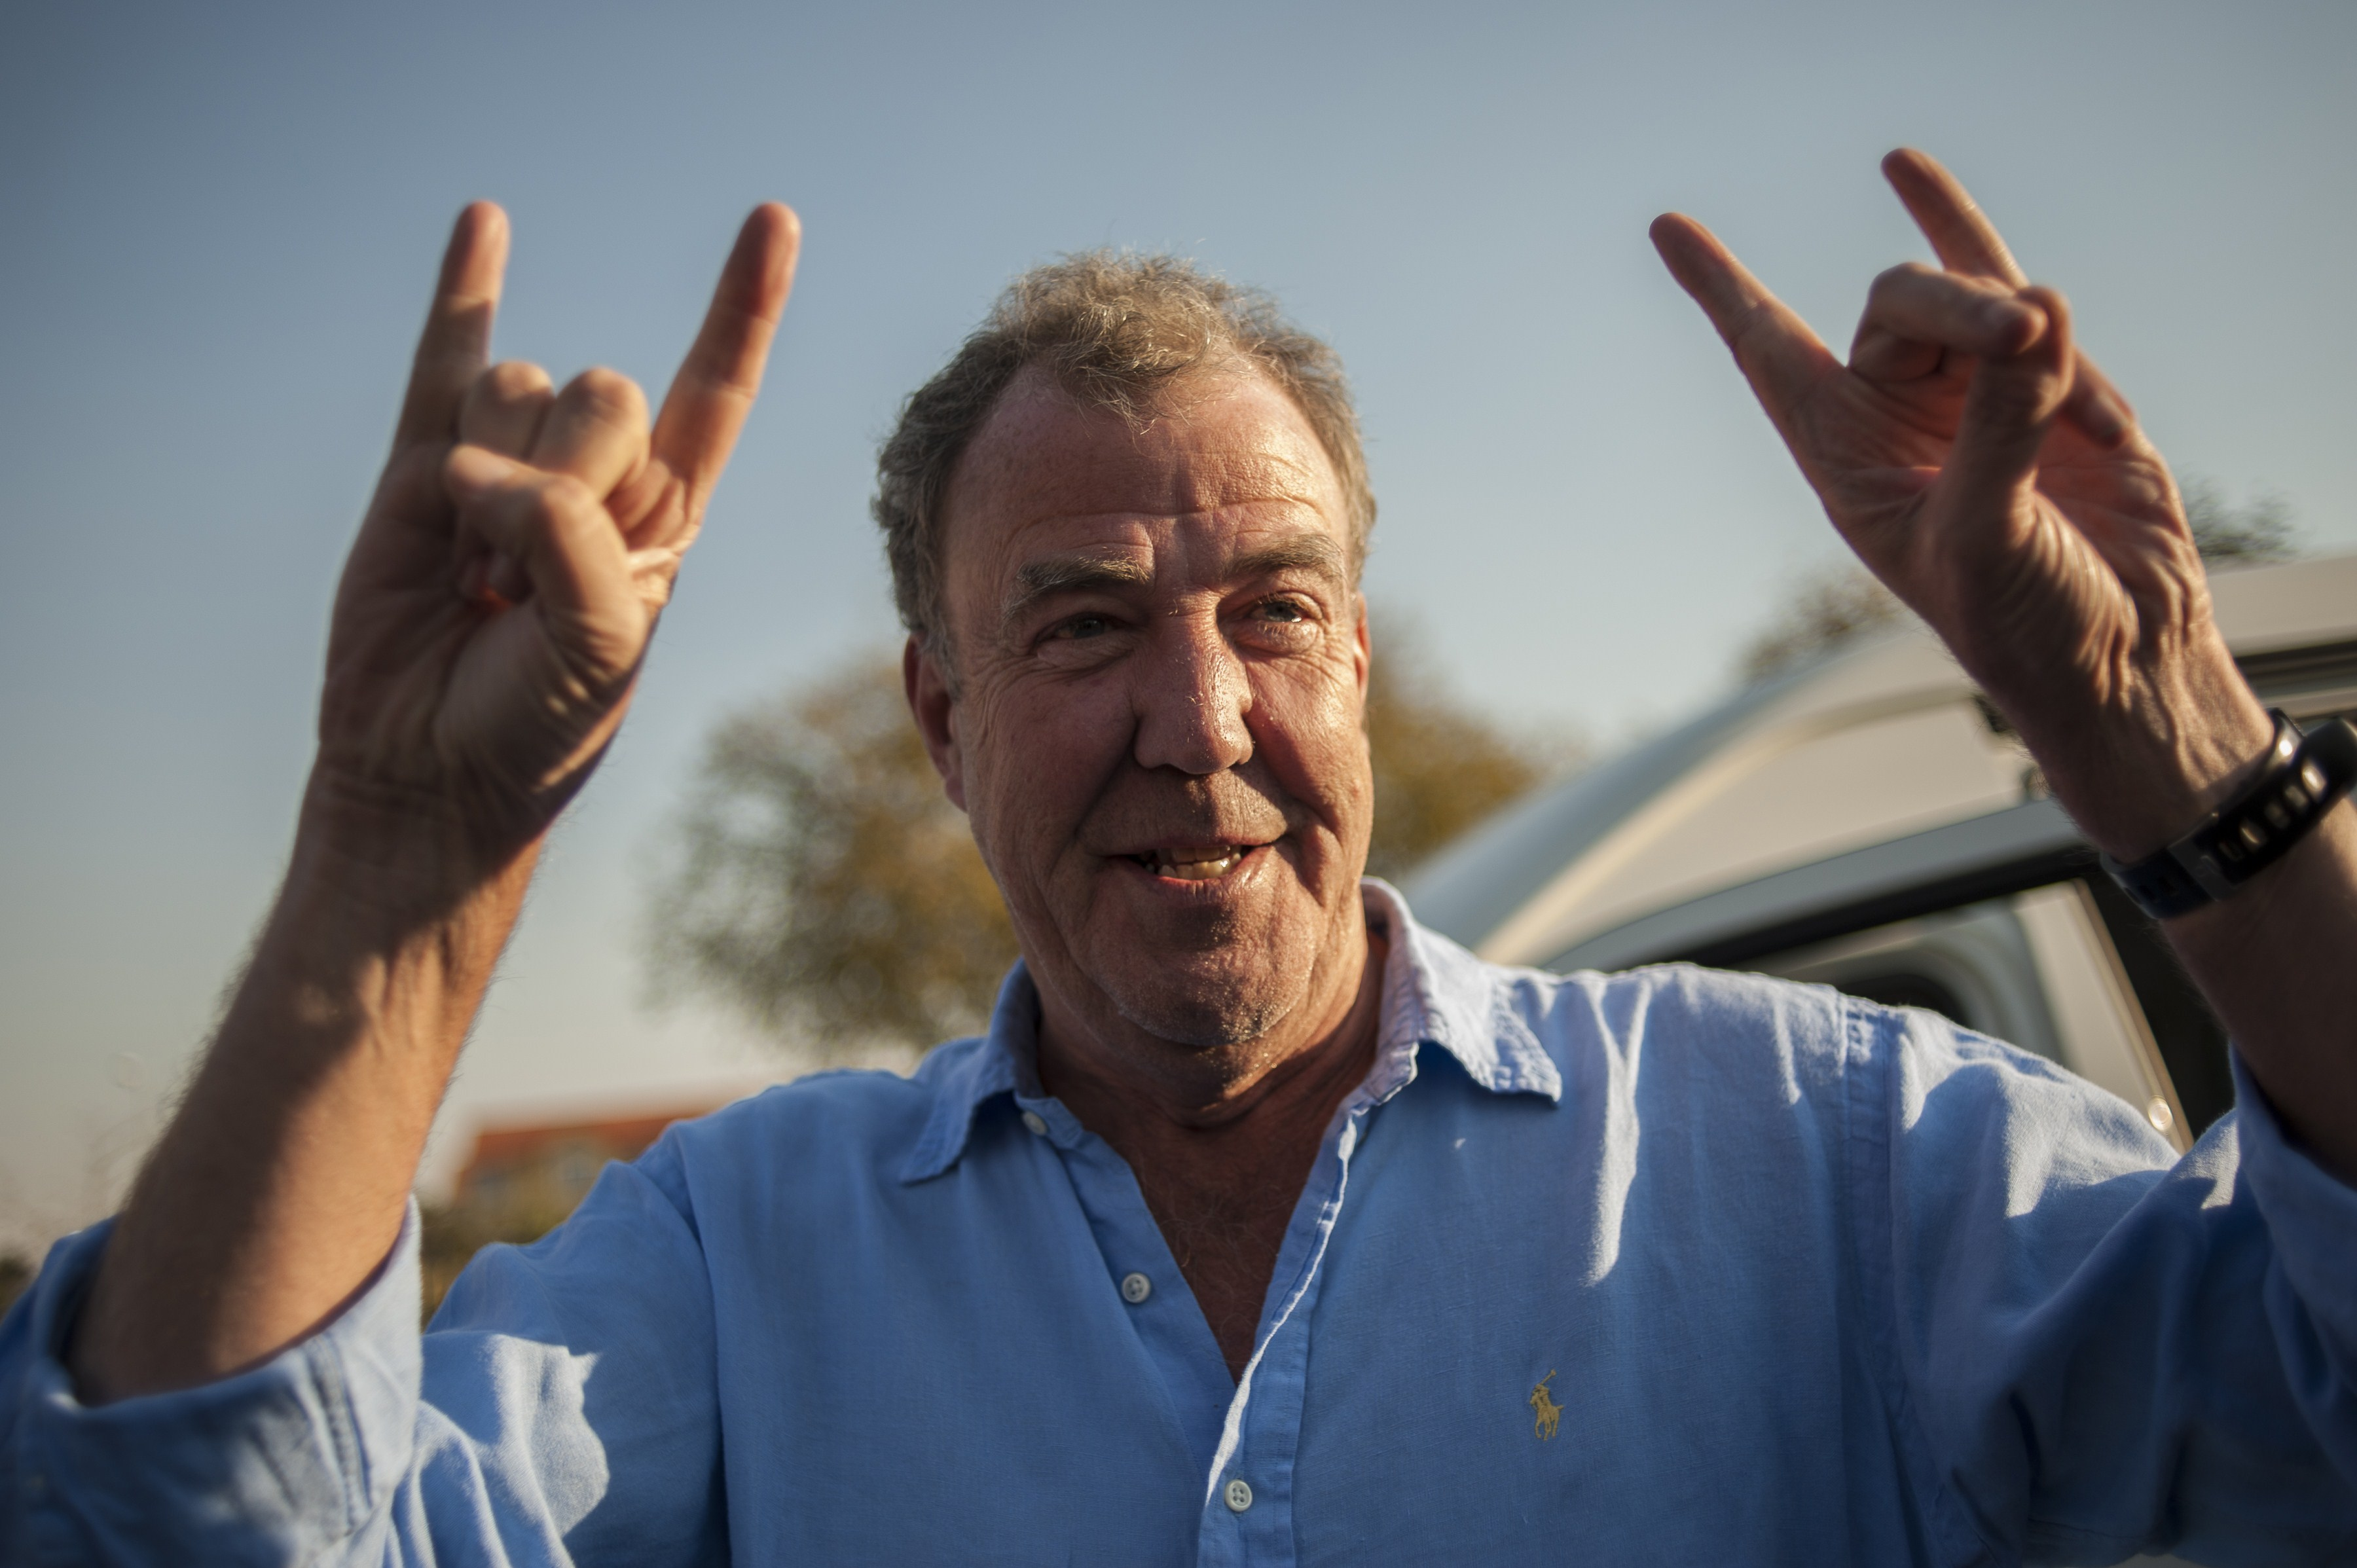 Jeremy Clarkson thinks he will 'be dead soon' (Picture: STEFAN HEUNIS/AFP/Getty Images)